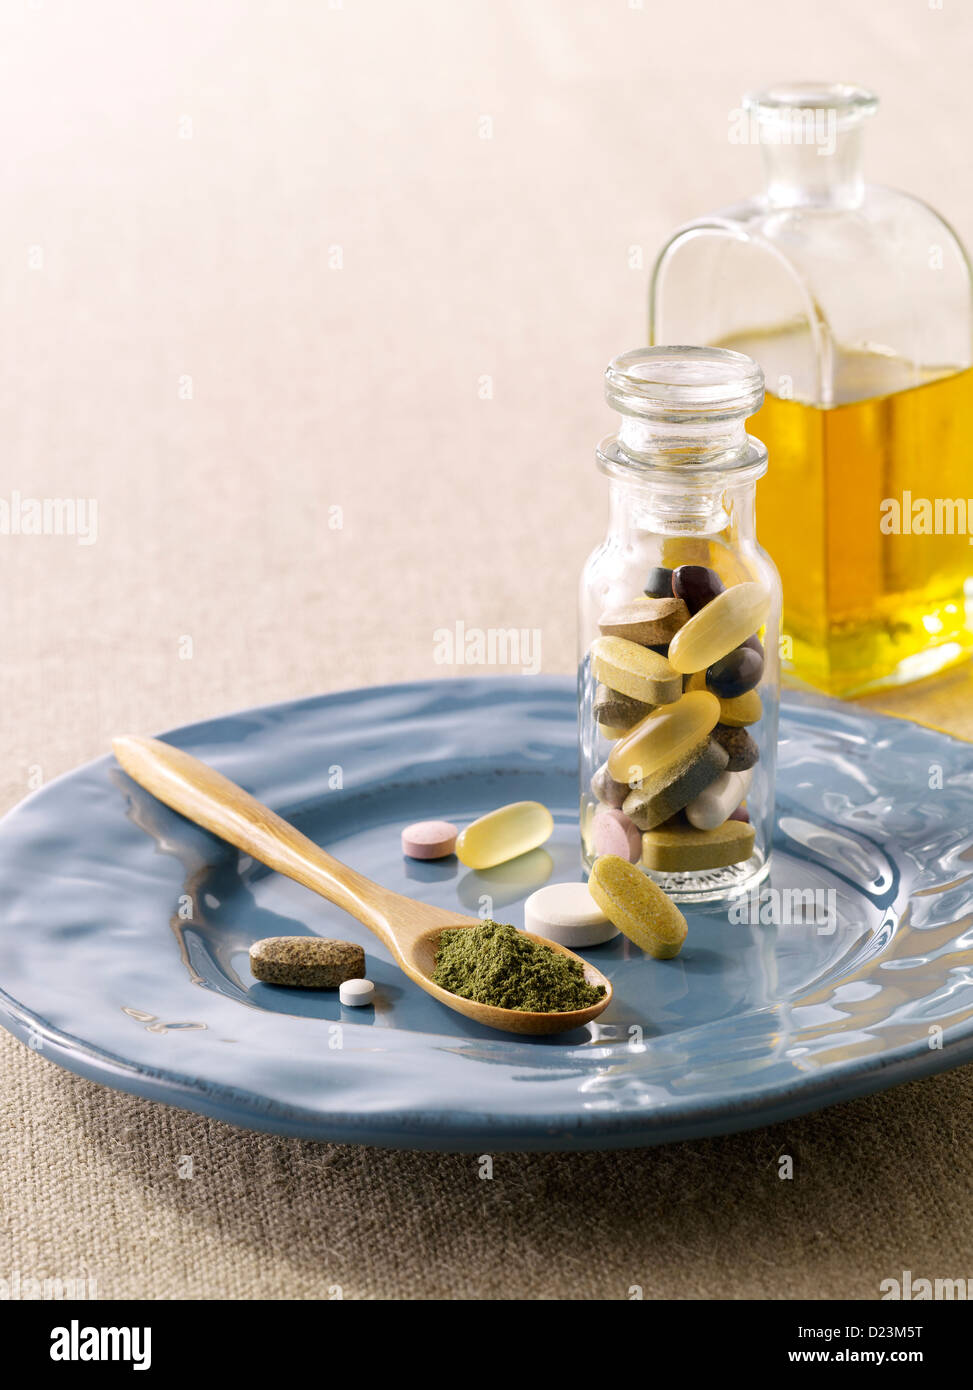 Supplements and vitamins - Stock Image